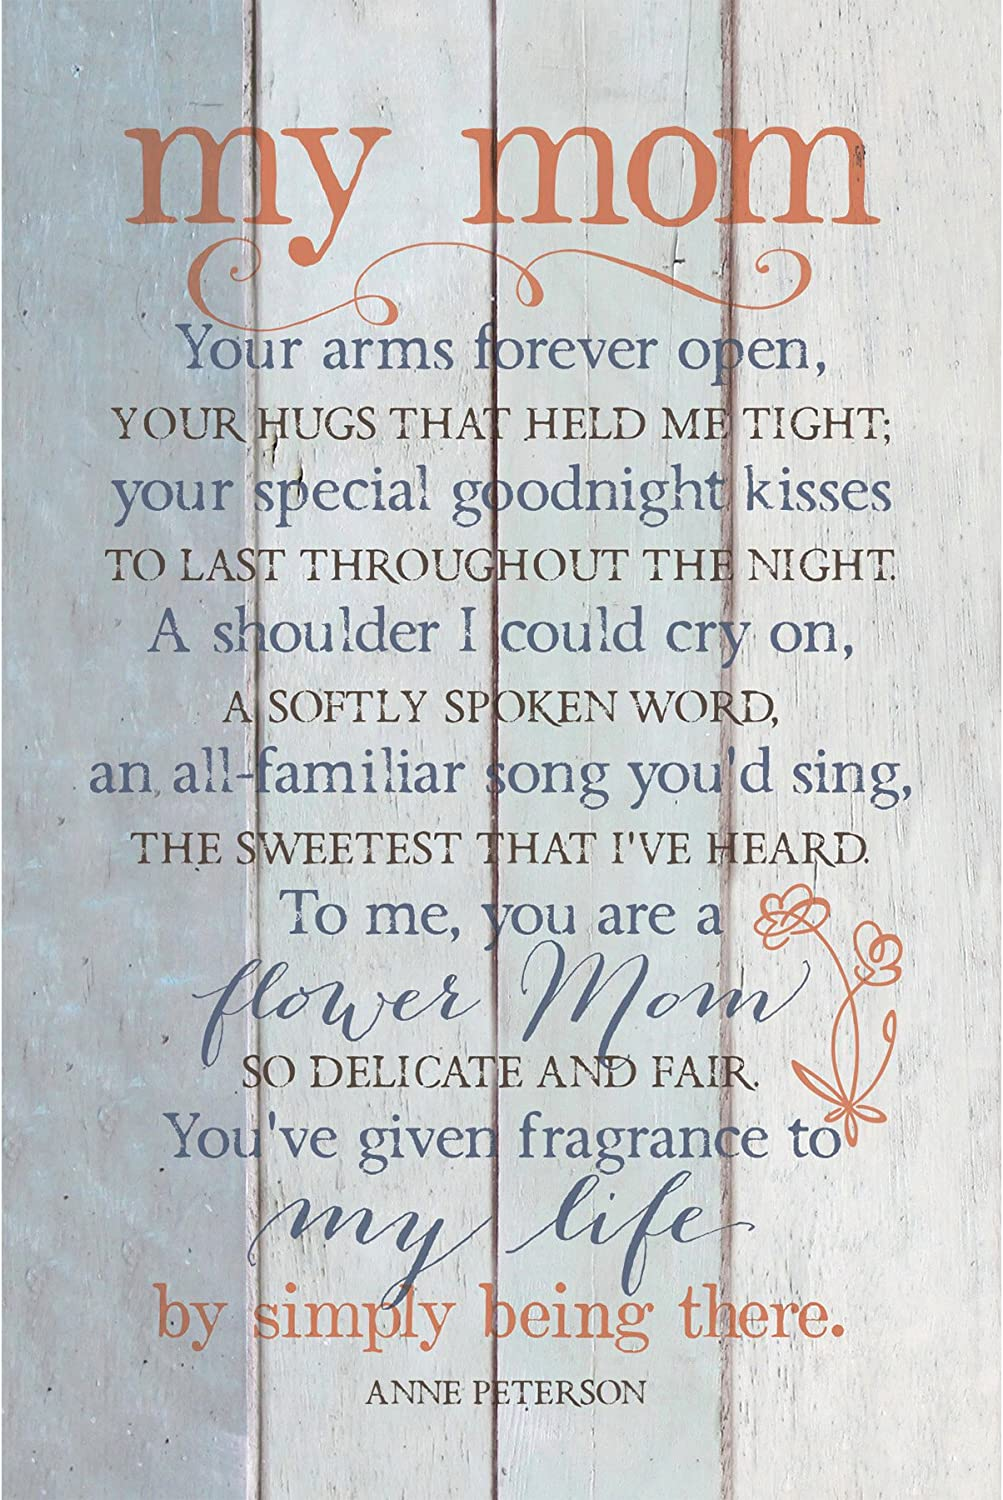 """My Mom Wood Plaque Inspiring Quote 6""""x9"""" - Classy Vertical Frame Wall & Tabletop Decoration 